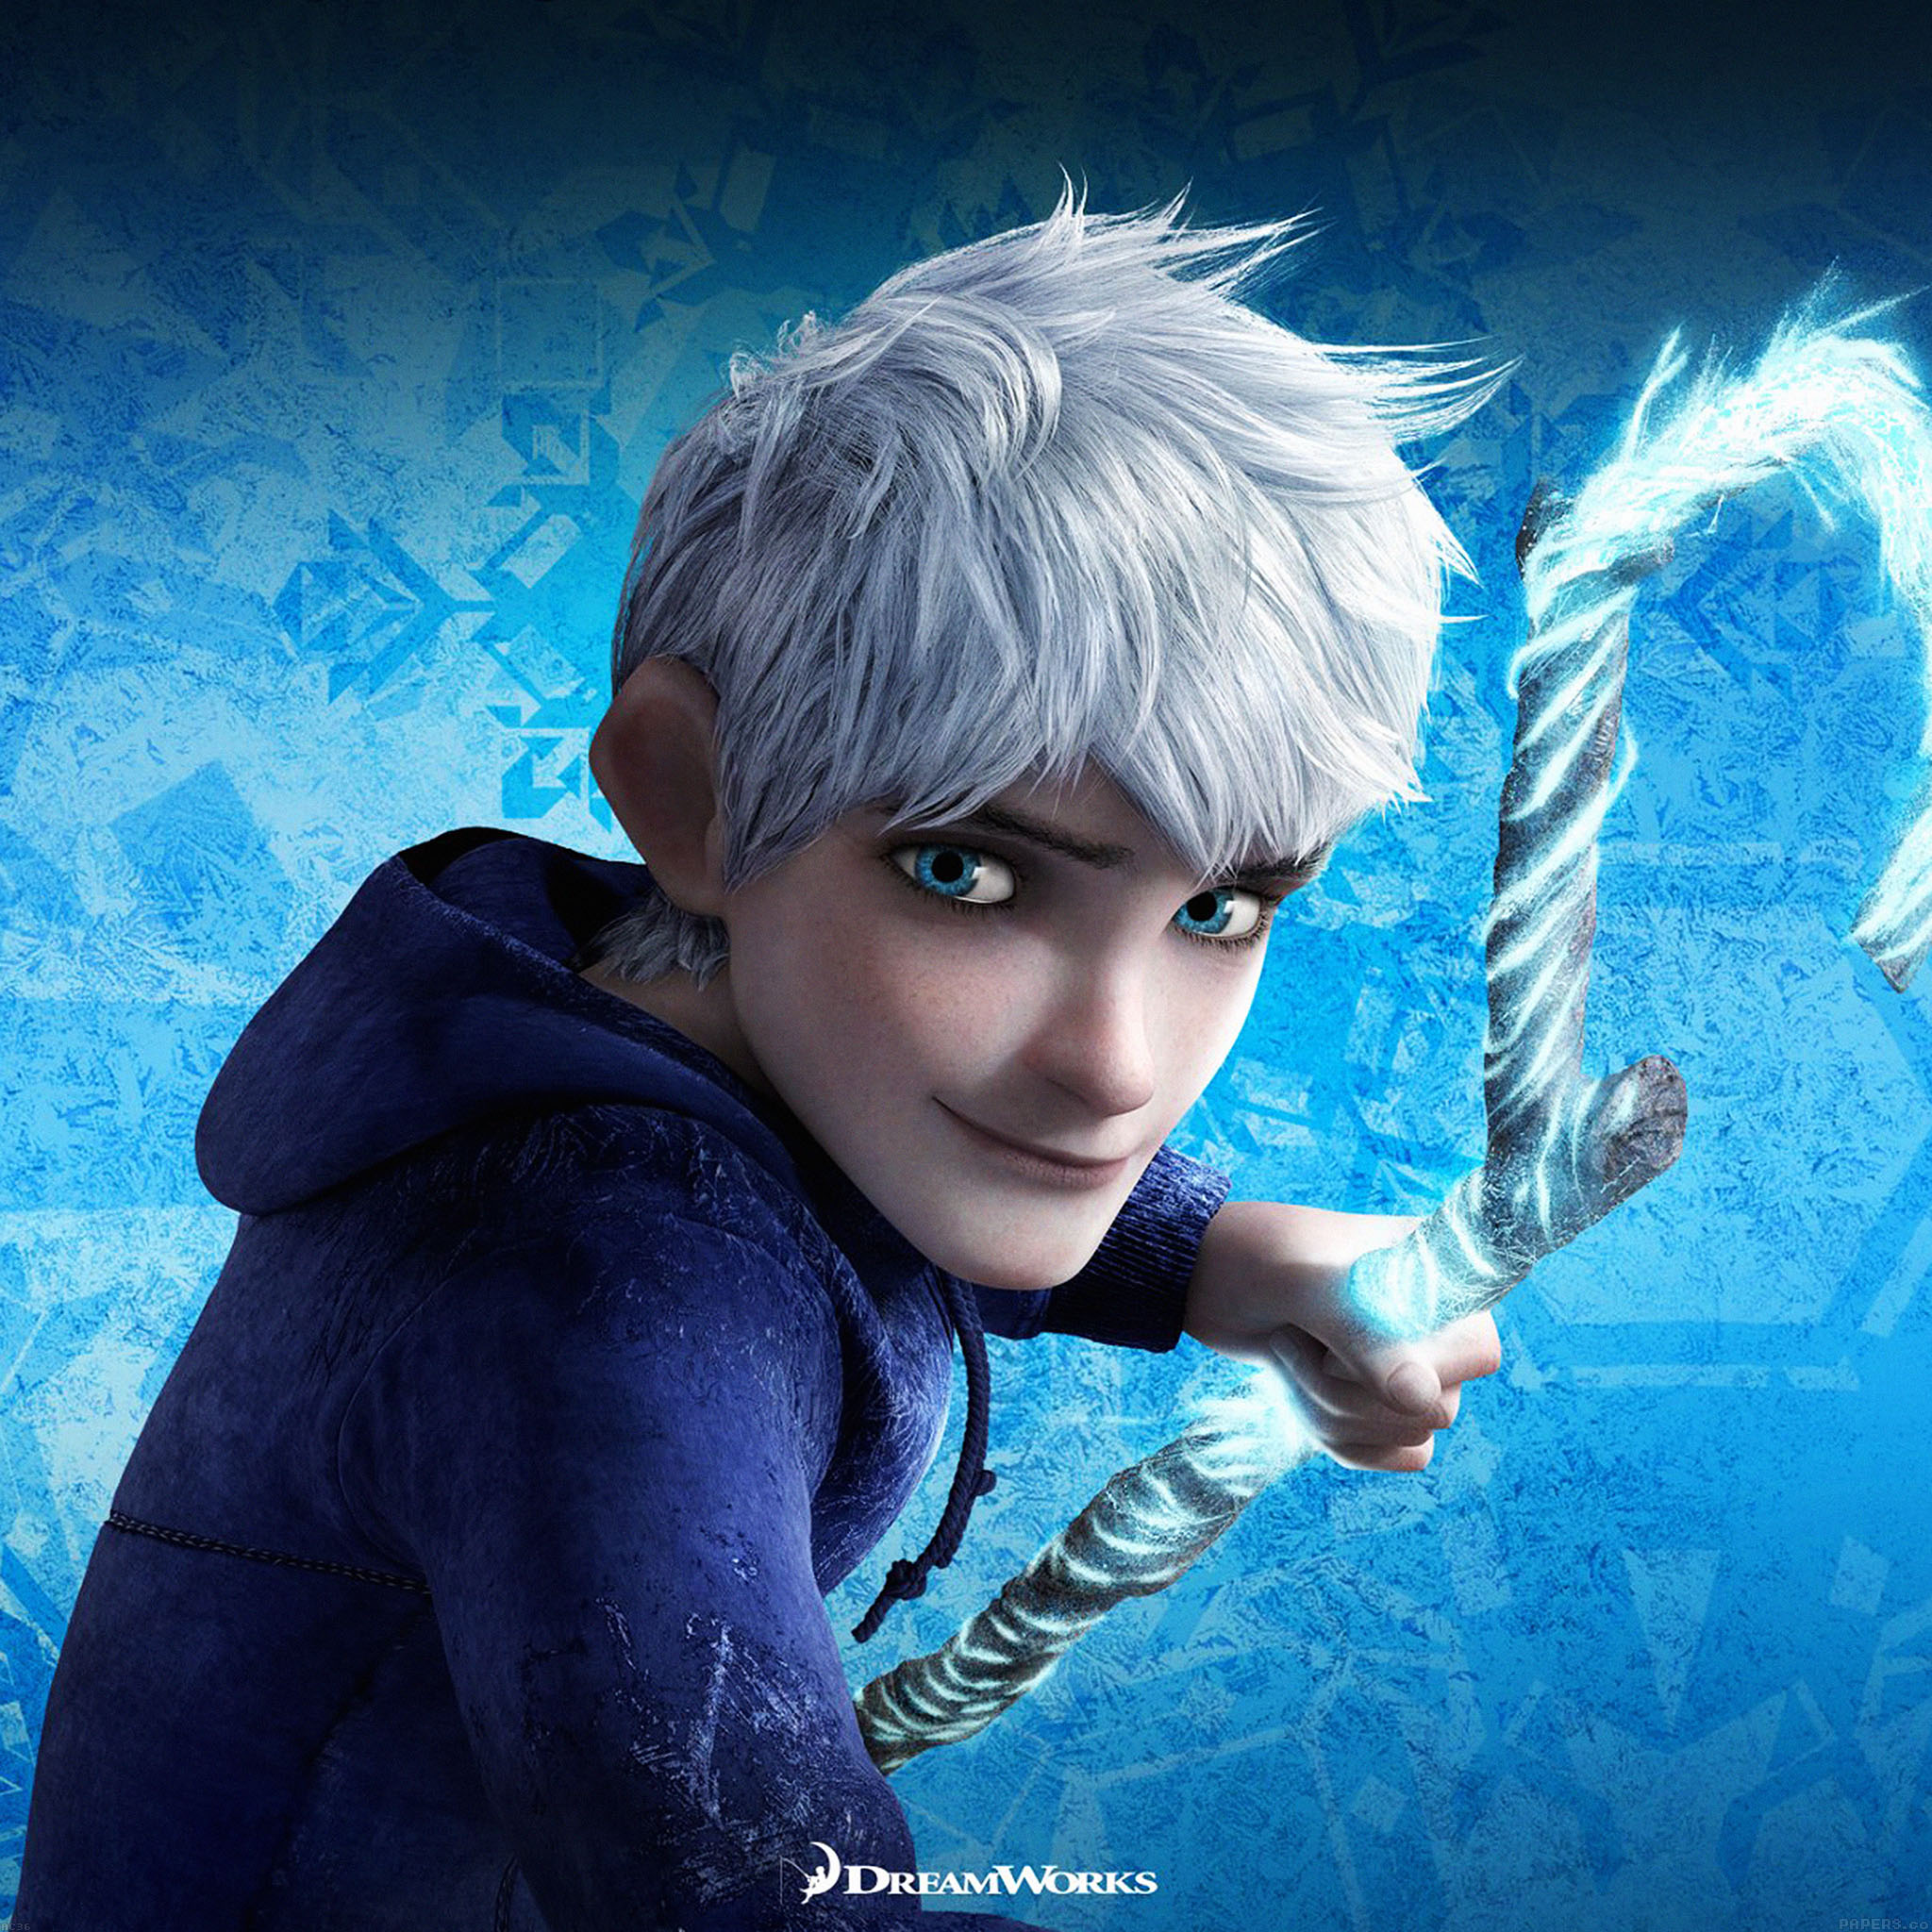 Iphone 5 Fall Wallpaper Freeios7 Ac36 Wallpaper Rise Of The Guardians Jack Frost